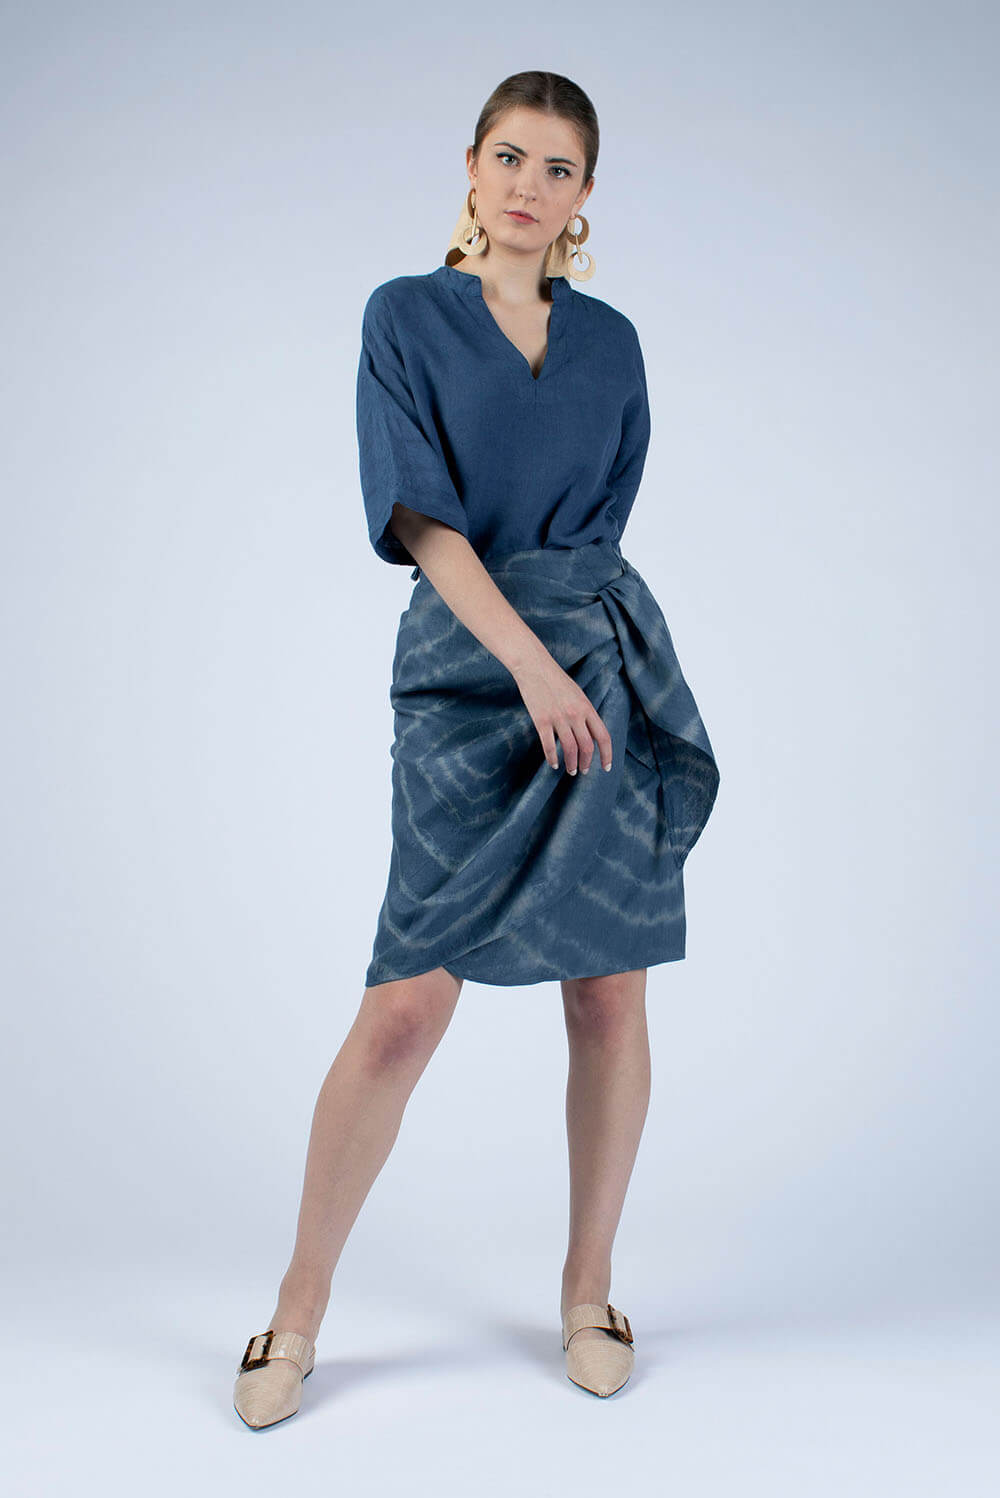 Lydia tie dyed linen wrap skirt with Jeans blue Helen linen tunic